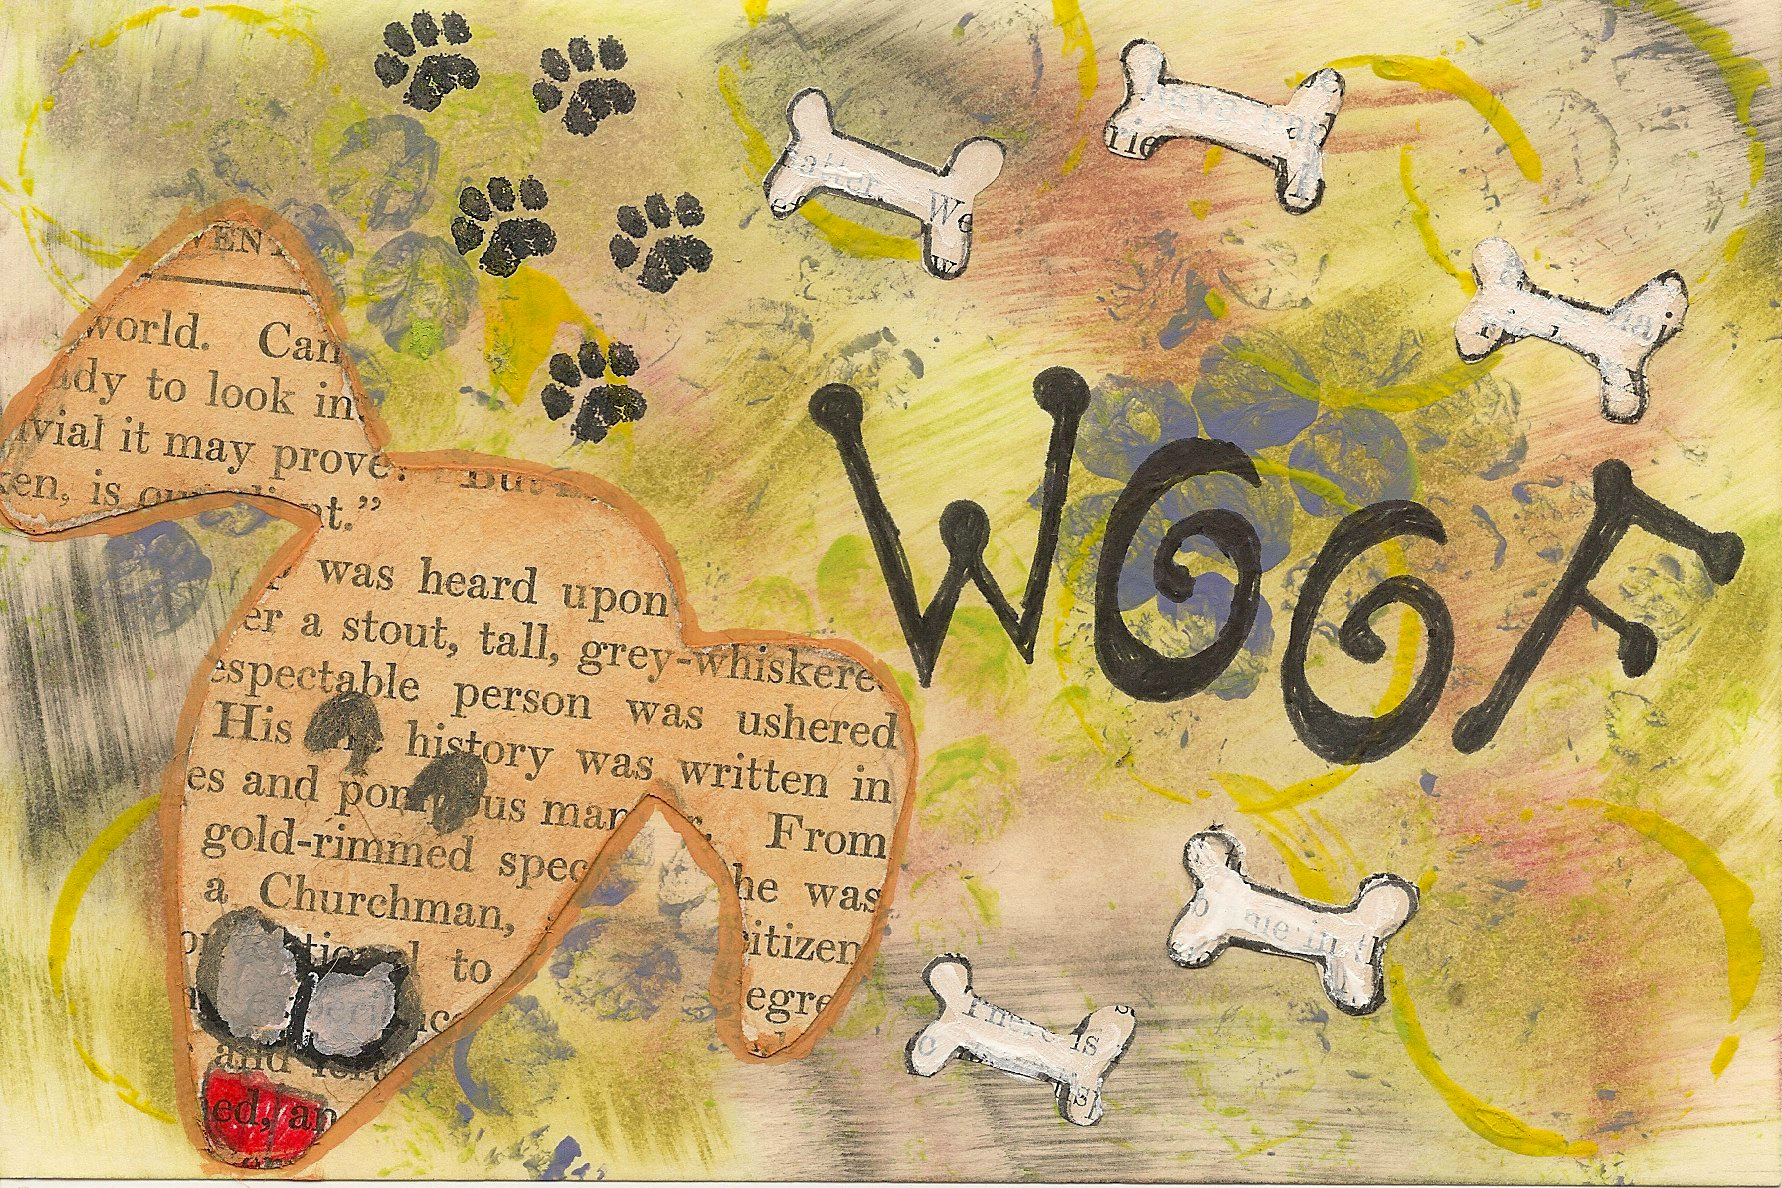 ICAD Woof